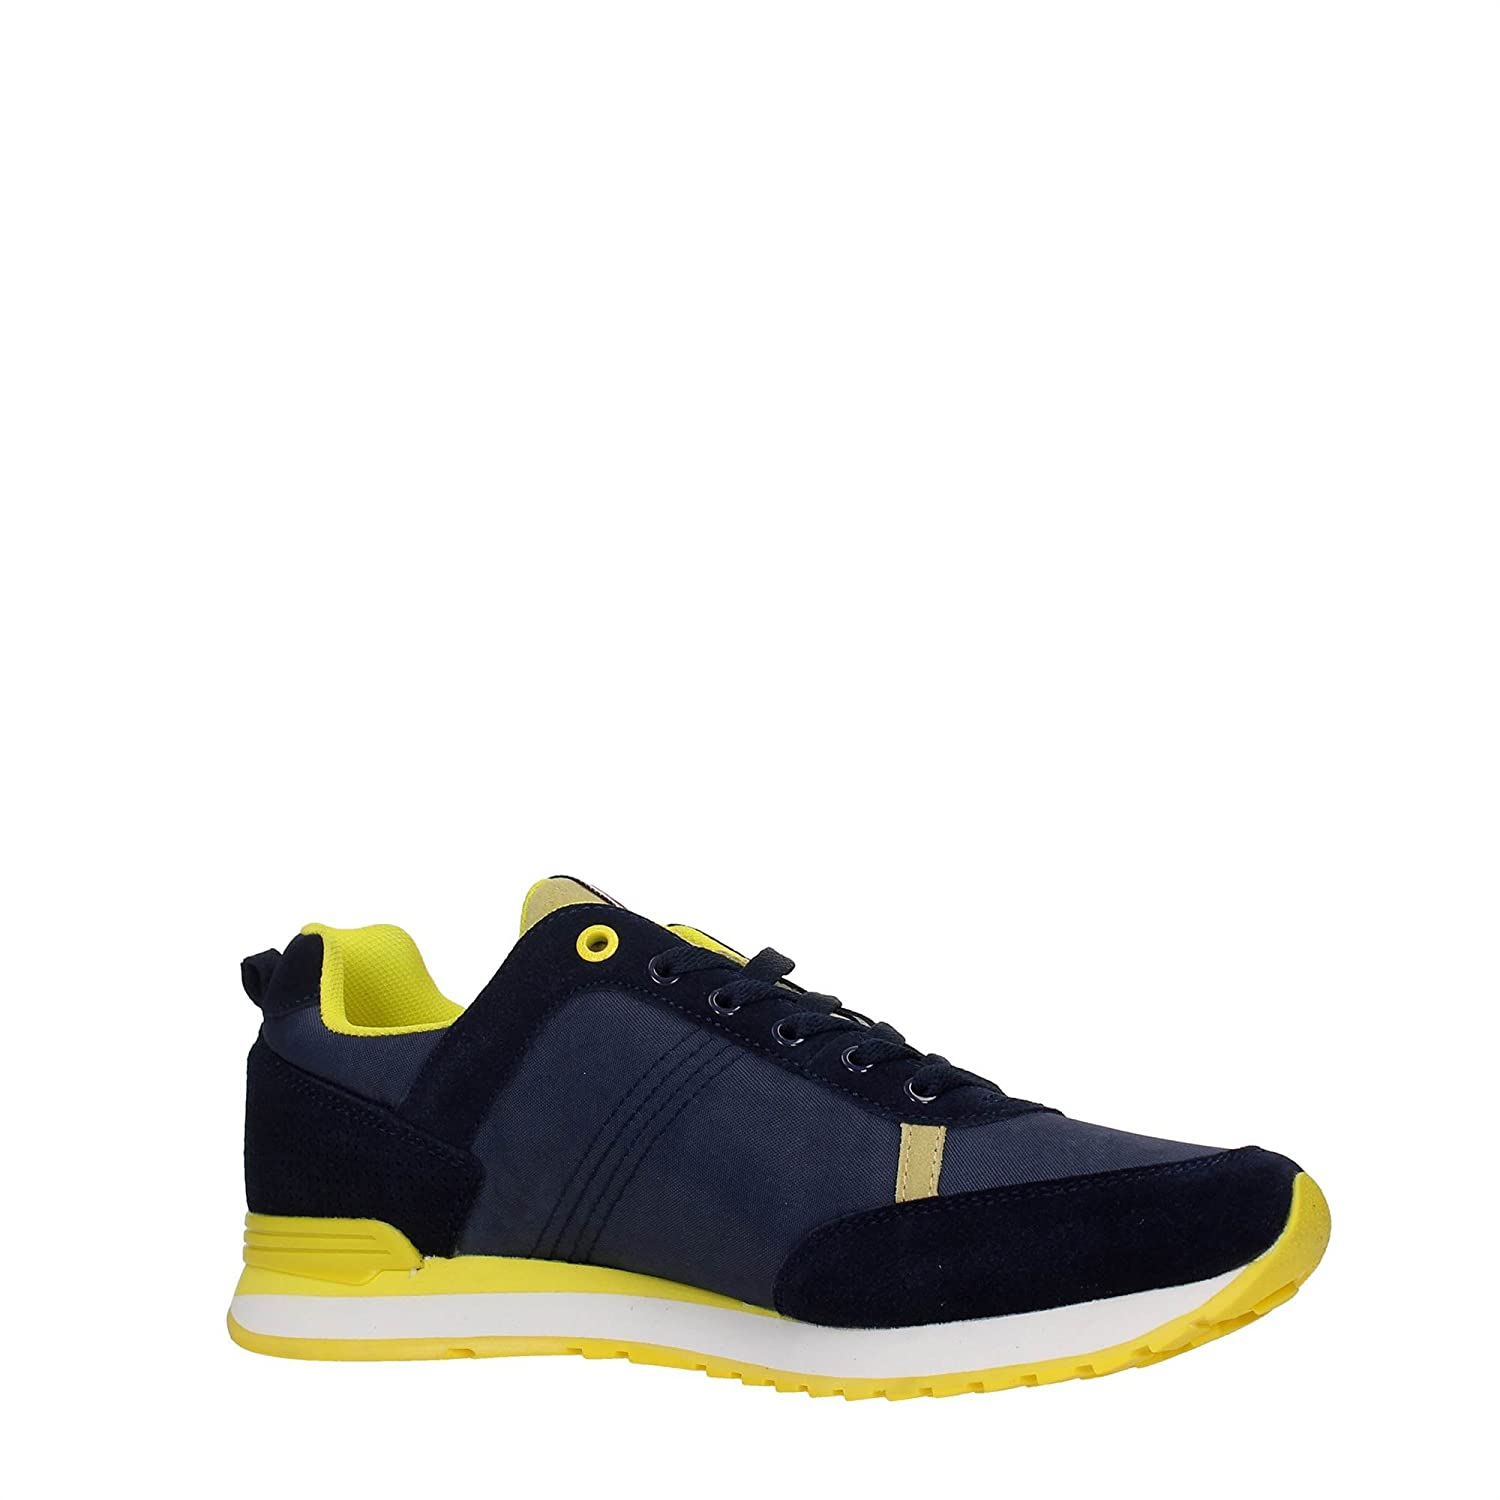 COLMAR ORIGINALS SCARPE TRAVIS COLORS 027 NAVY BLUE YELLOW UOMO 42